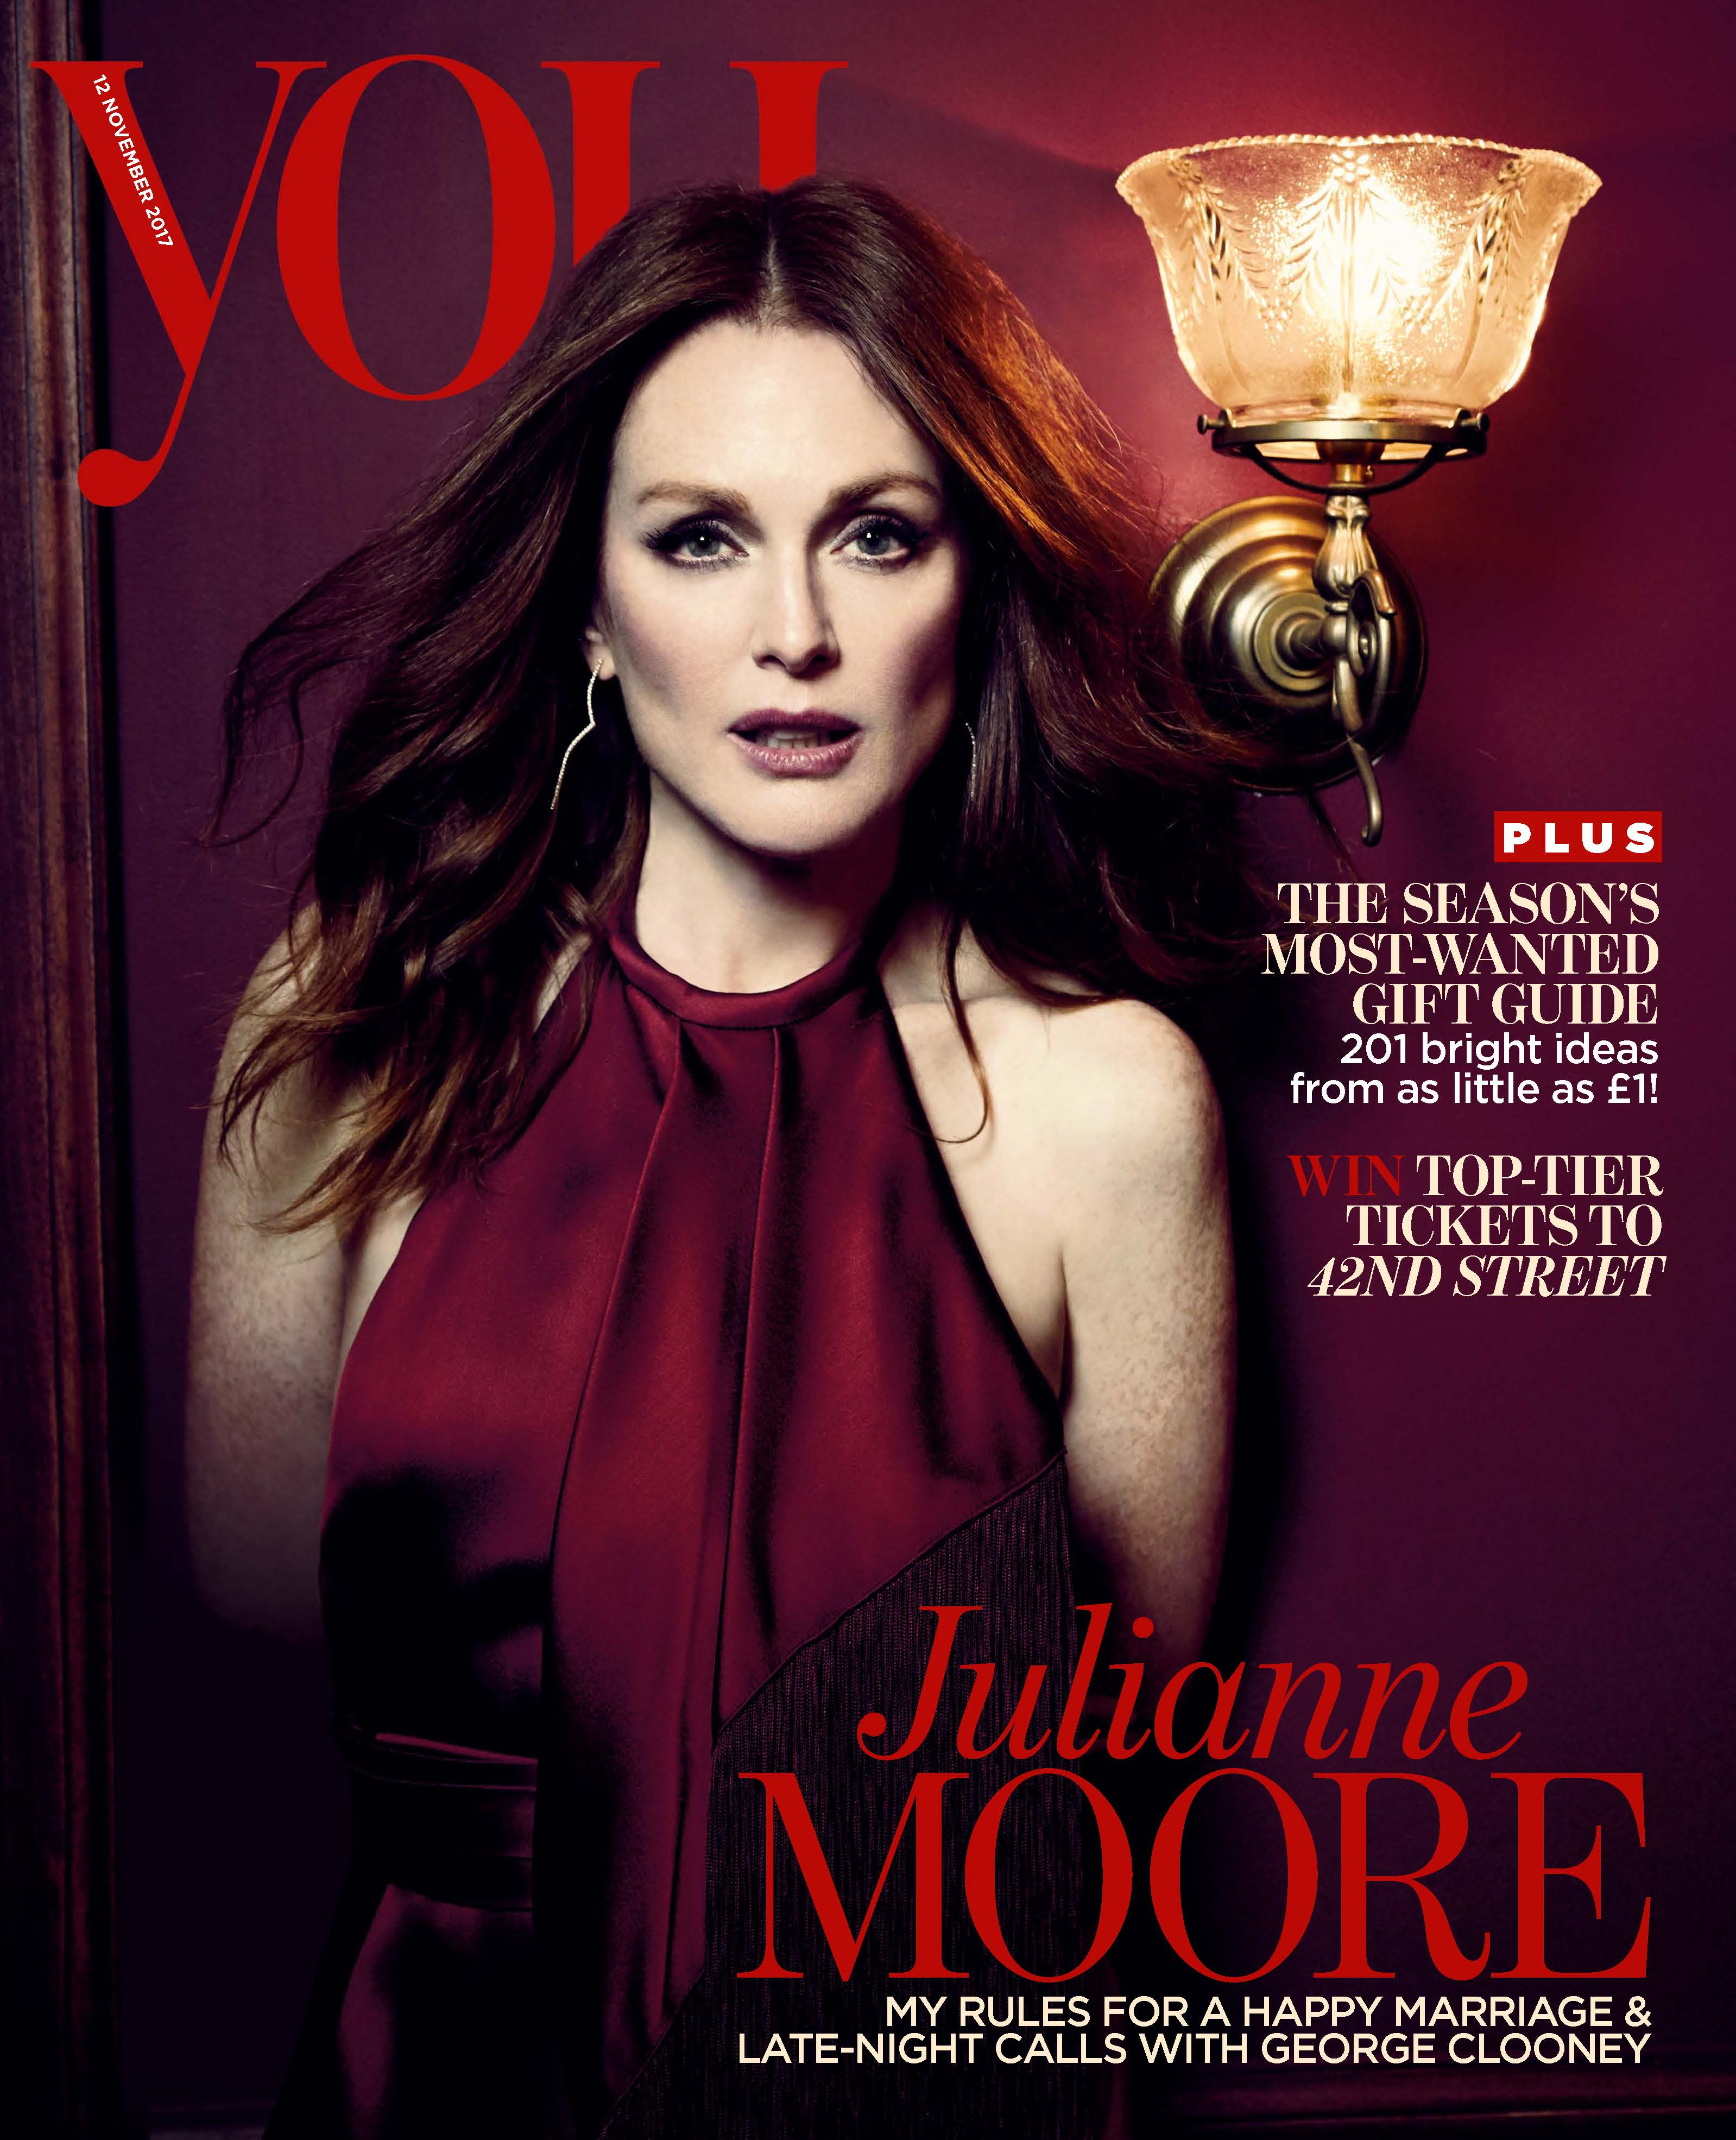 dog, dogs, style, magazine, press, editorial, you, julianne moore